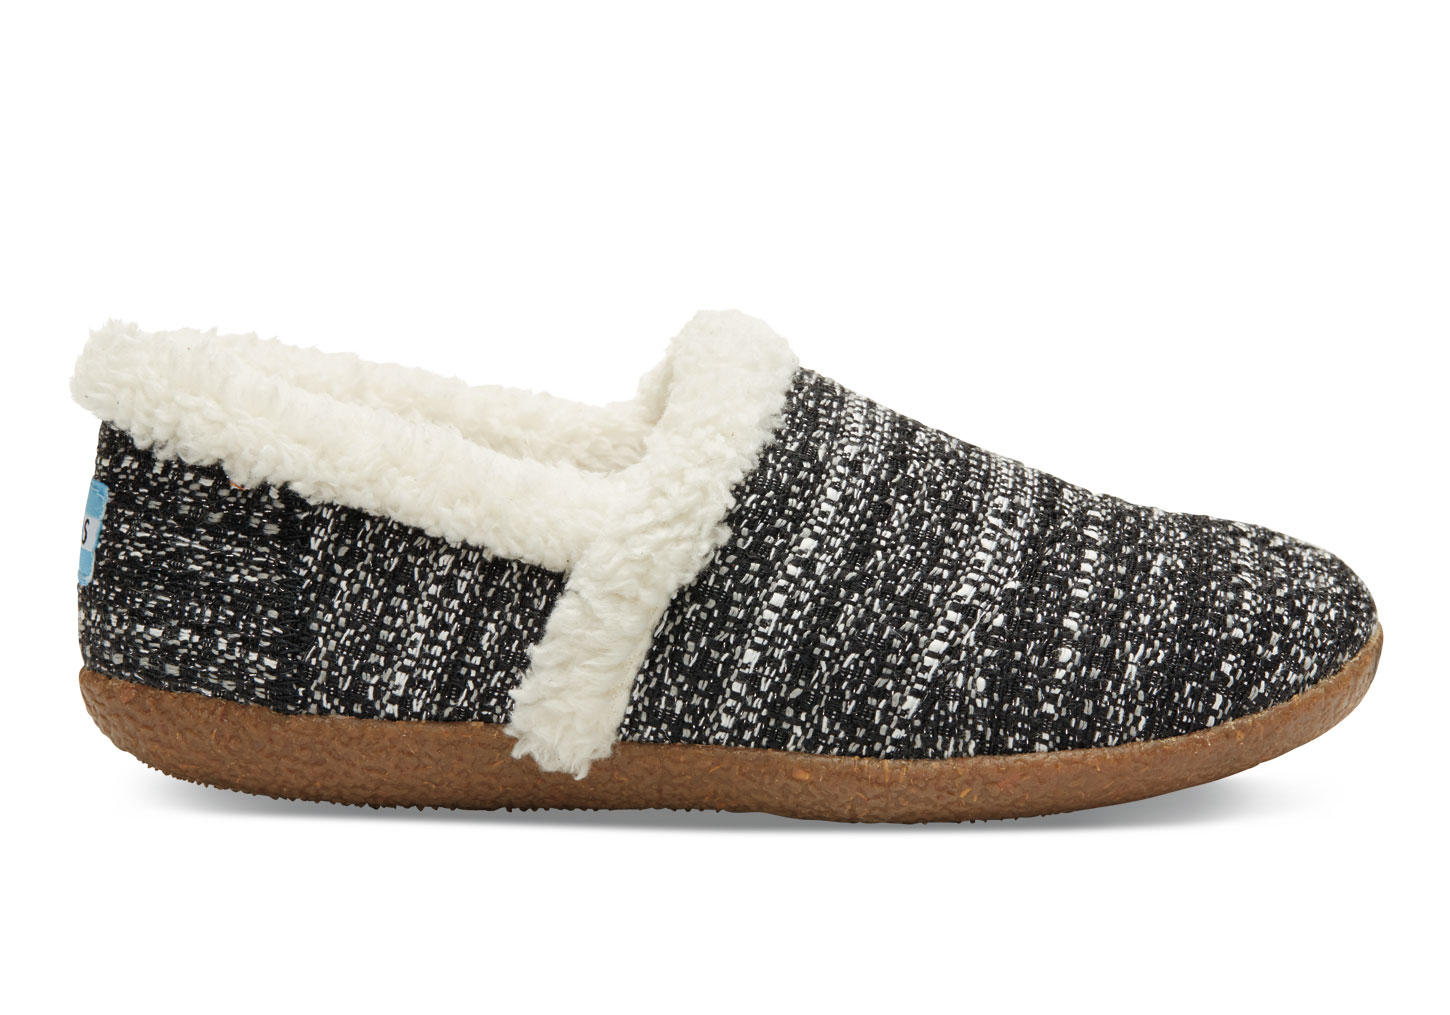 Shop for womens black slippers online at distrib-wq9rfuqq.tk Next day delivery & free returns. s of products online. Buy ladies black slipper boots now!